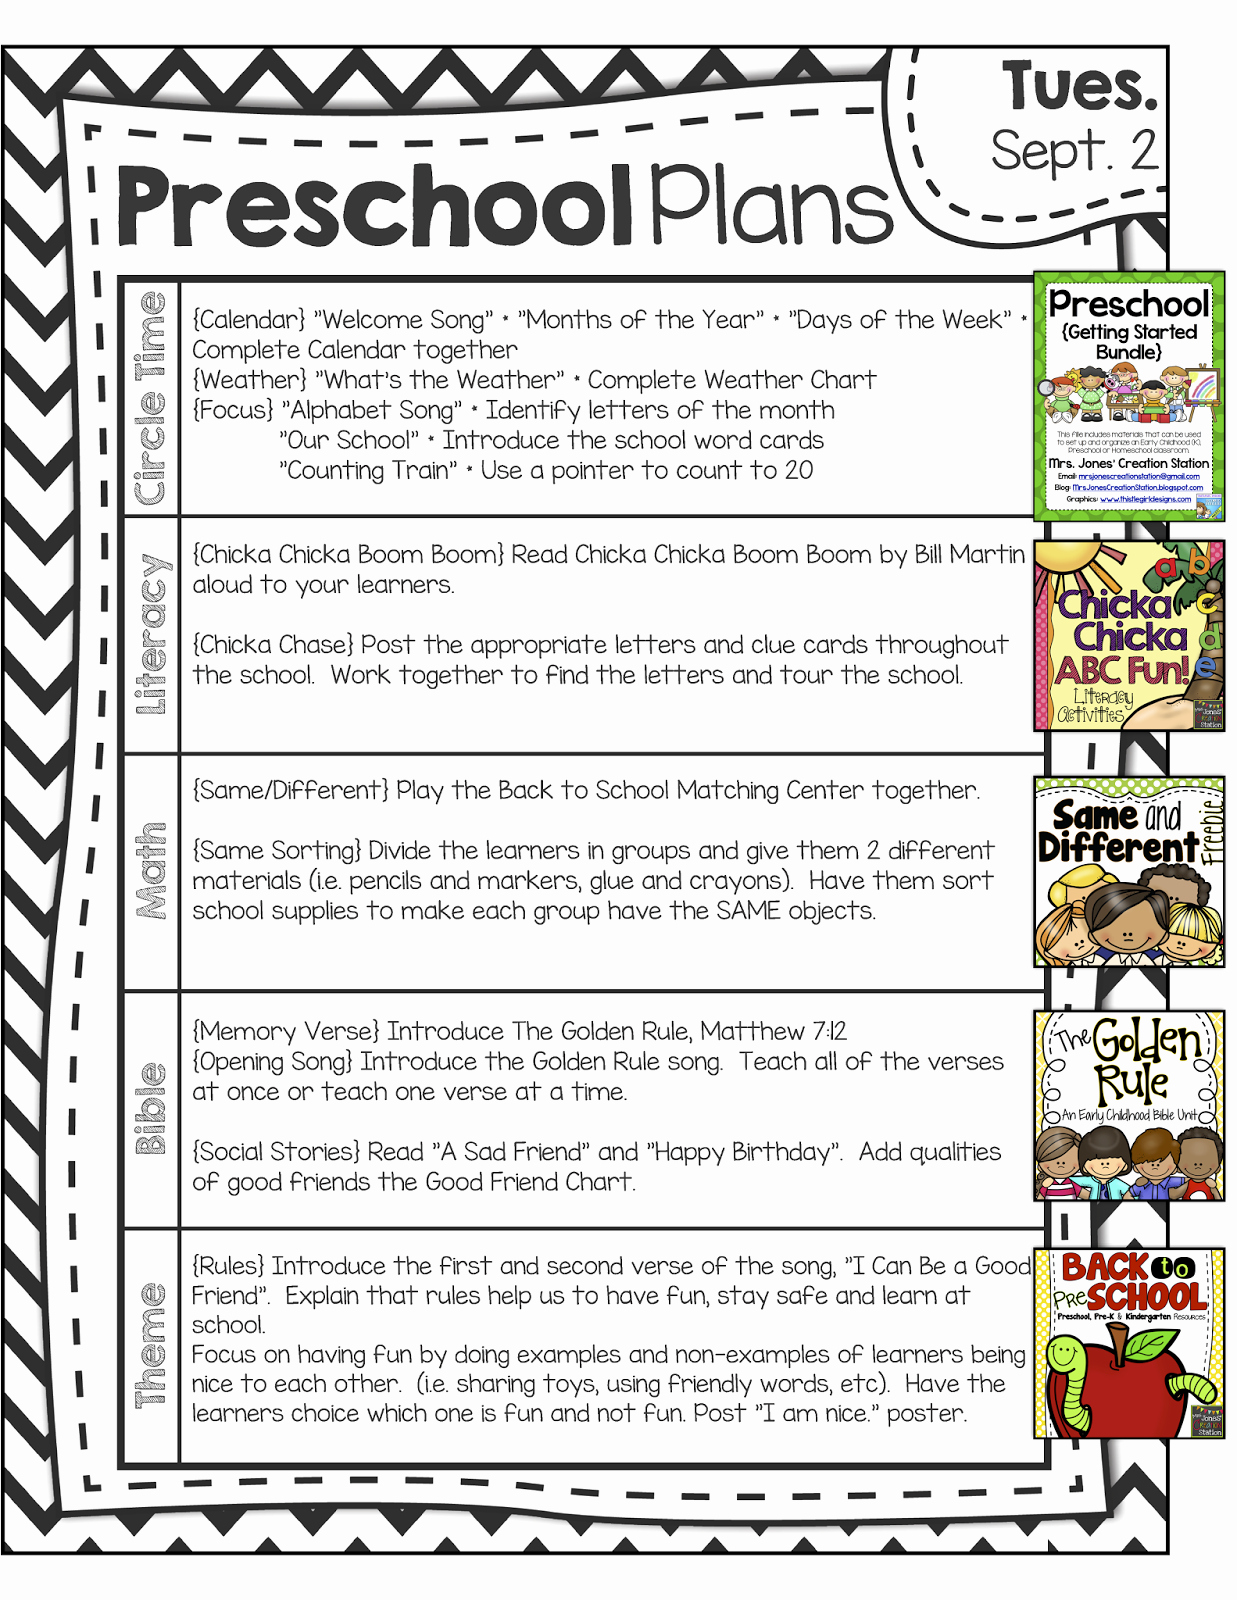 Sample Lesson Plan for Preschool Best Of Windows 10 Product Activation Keys All Versions